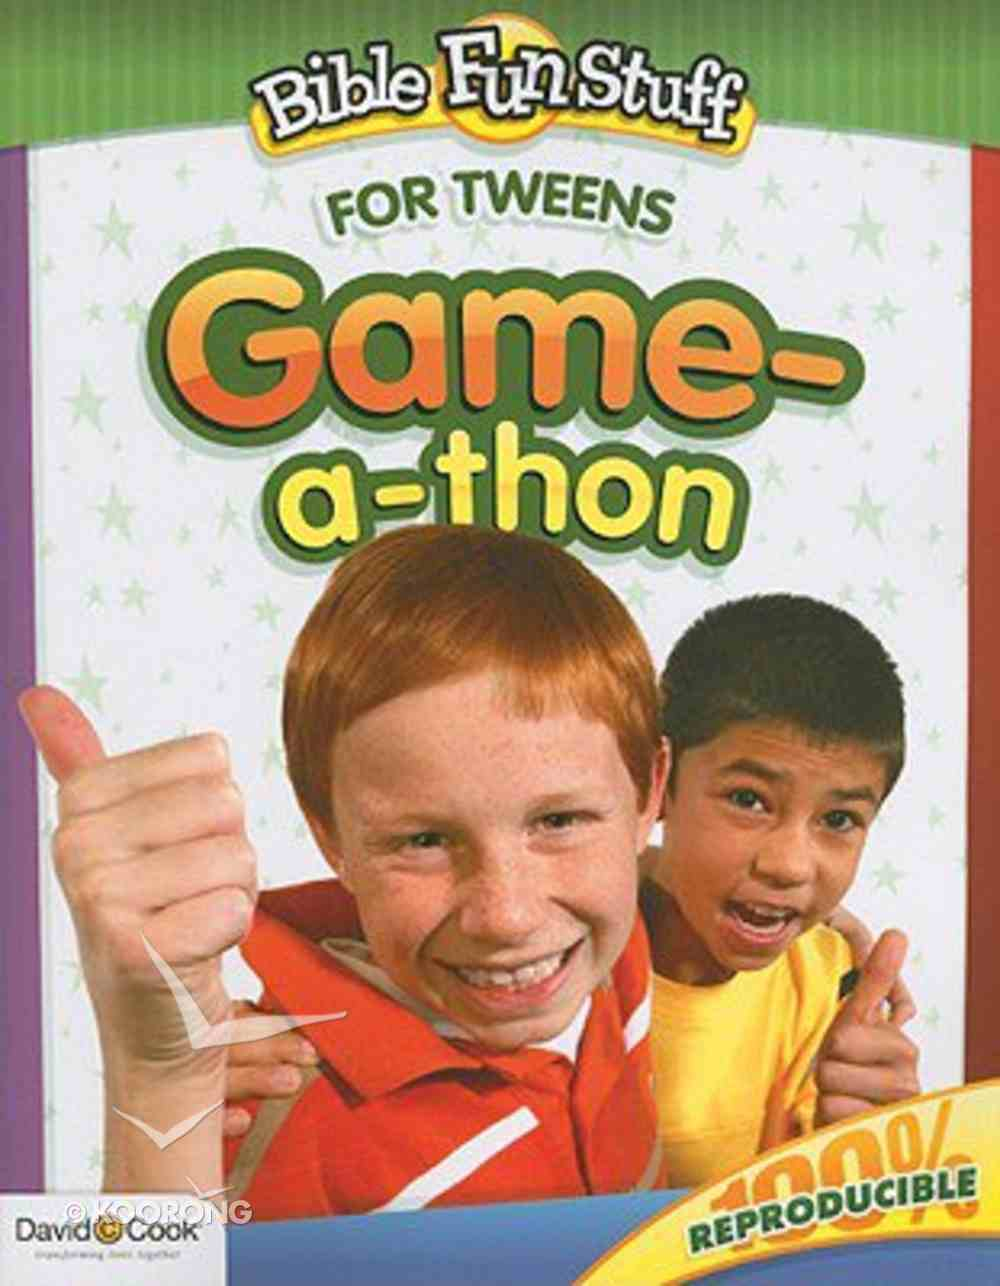 Game-A-Thon (Reproducible) (For Tweens) (Bible Fun Stuff Series) Paperback